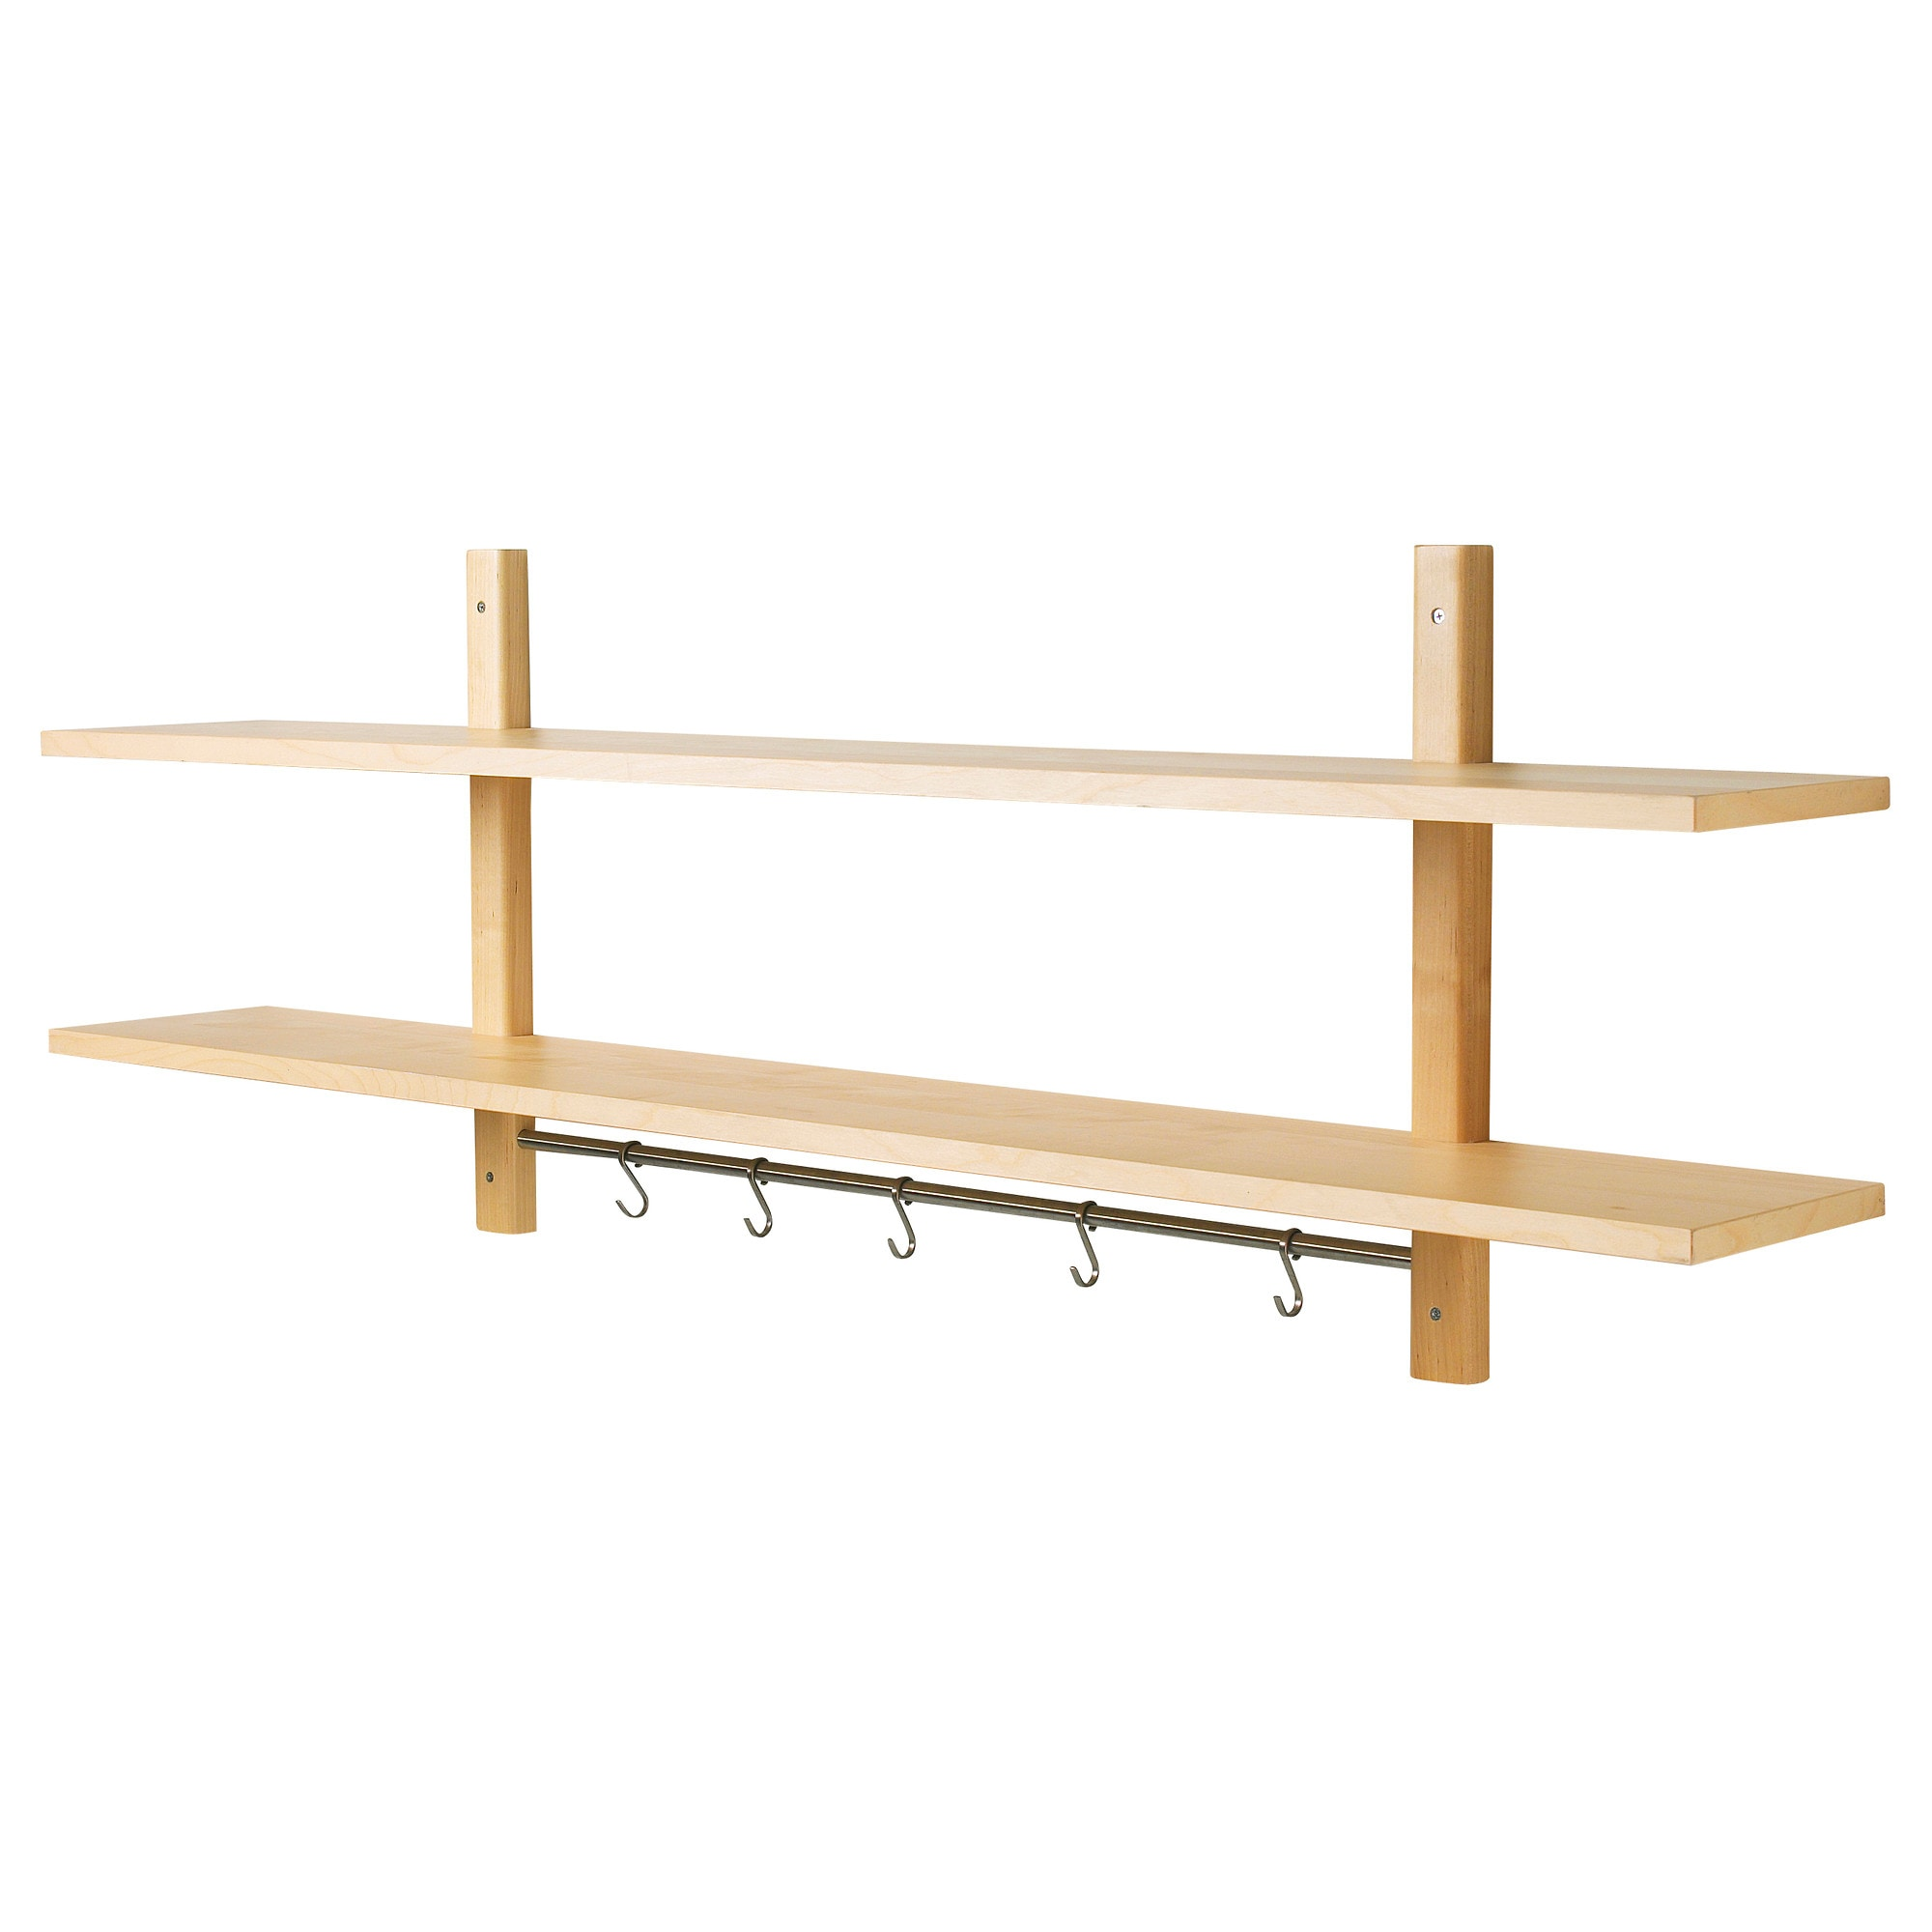 Ikea varde wall kitchen shelf with 5 hooks solid birch ebay - Etagere murale metal cuisine ...